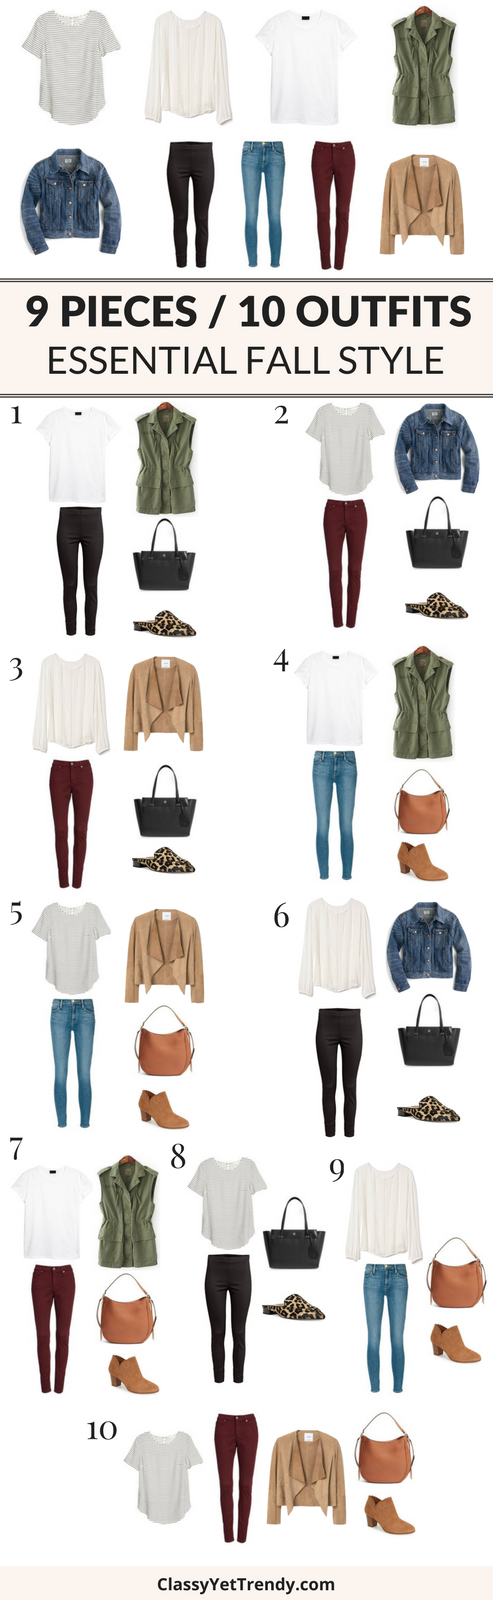 9 Pieces 10 Outfits (Essential Fall Style)